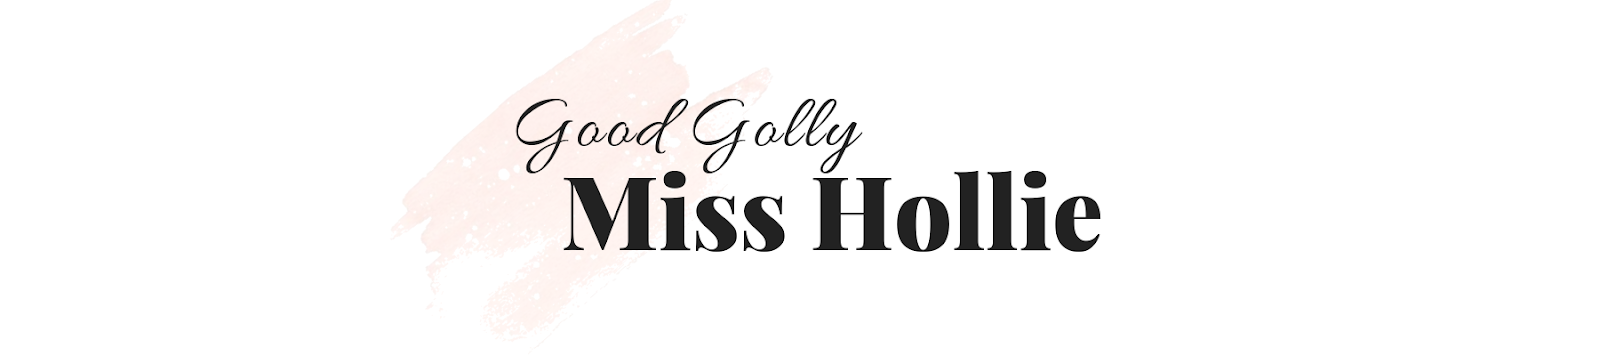 Good Golly Miss Hollie | Lifestyle, Beauty, Mental Health, Work